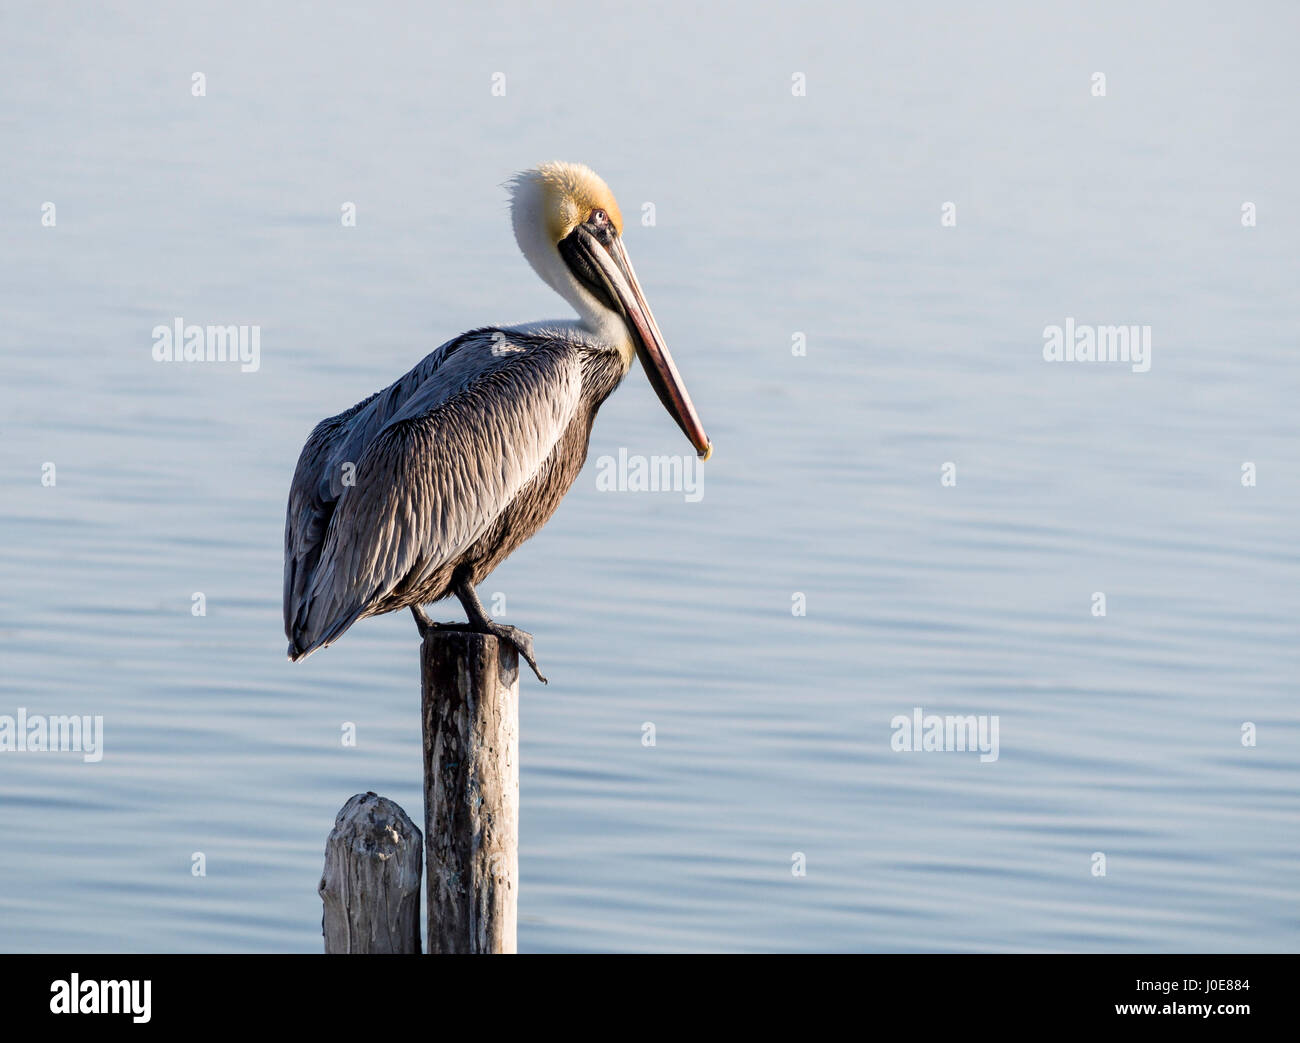 Brown Pelican on a Post. A large brown pelican suns itself in the early morning sunshine on a dock post in the harbor - Stock Image